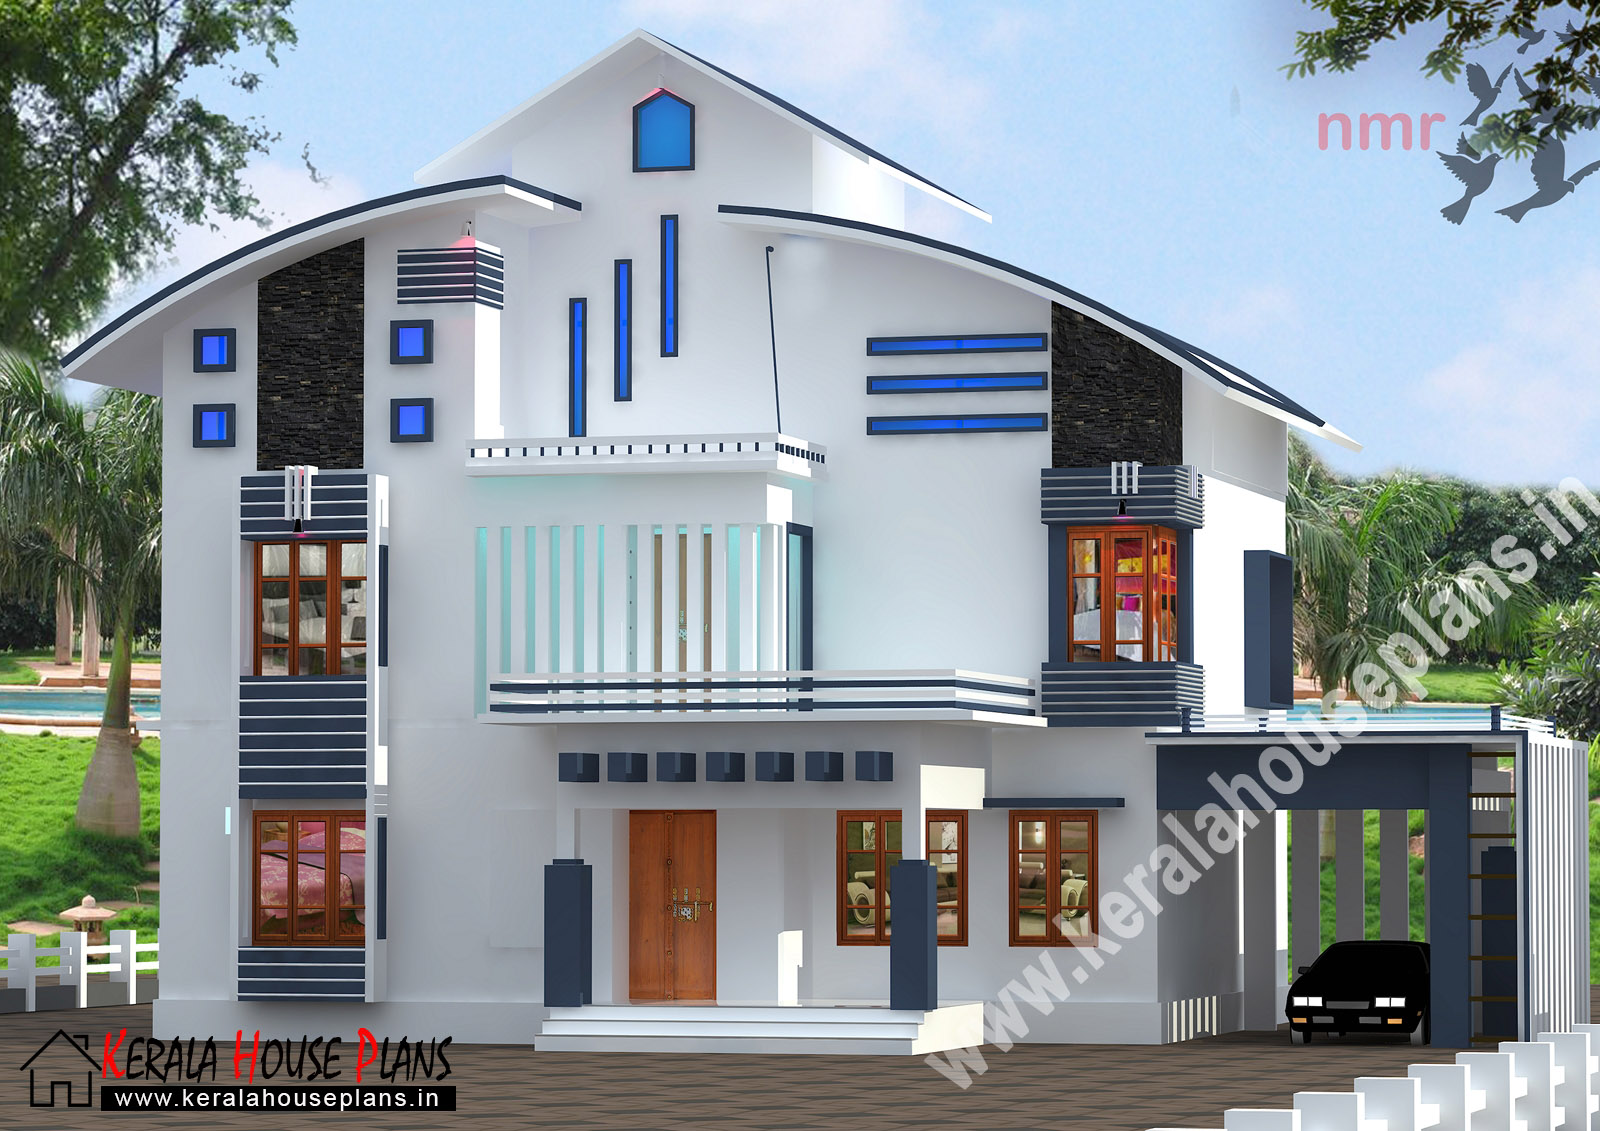 Kerala house plans and designs for Kerala house plans and elevations